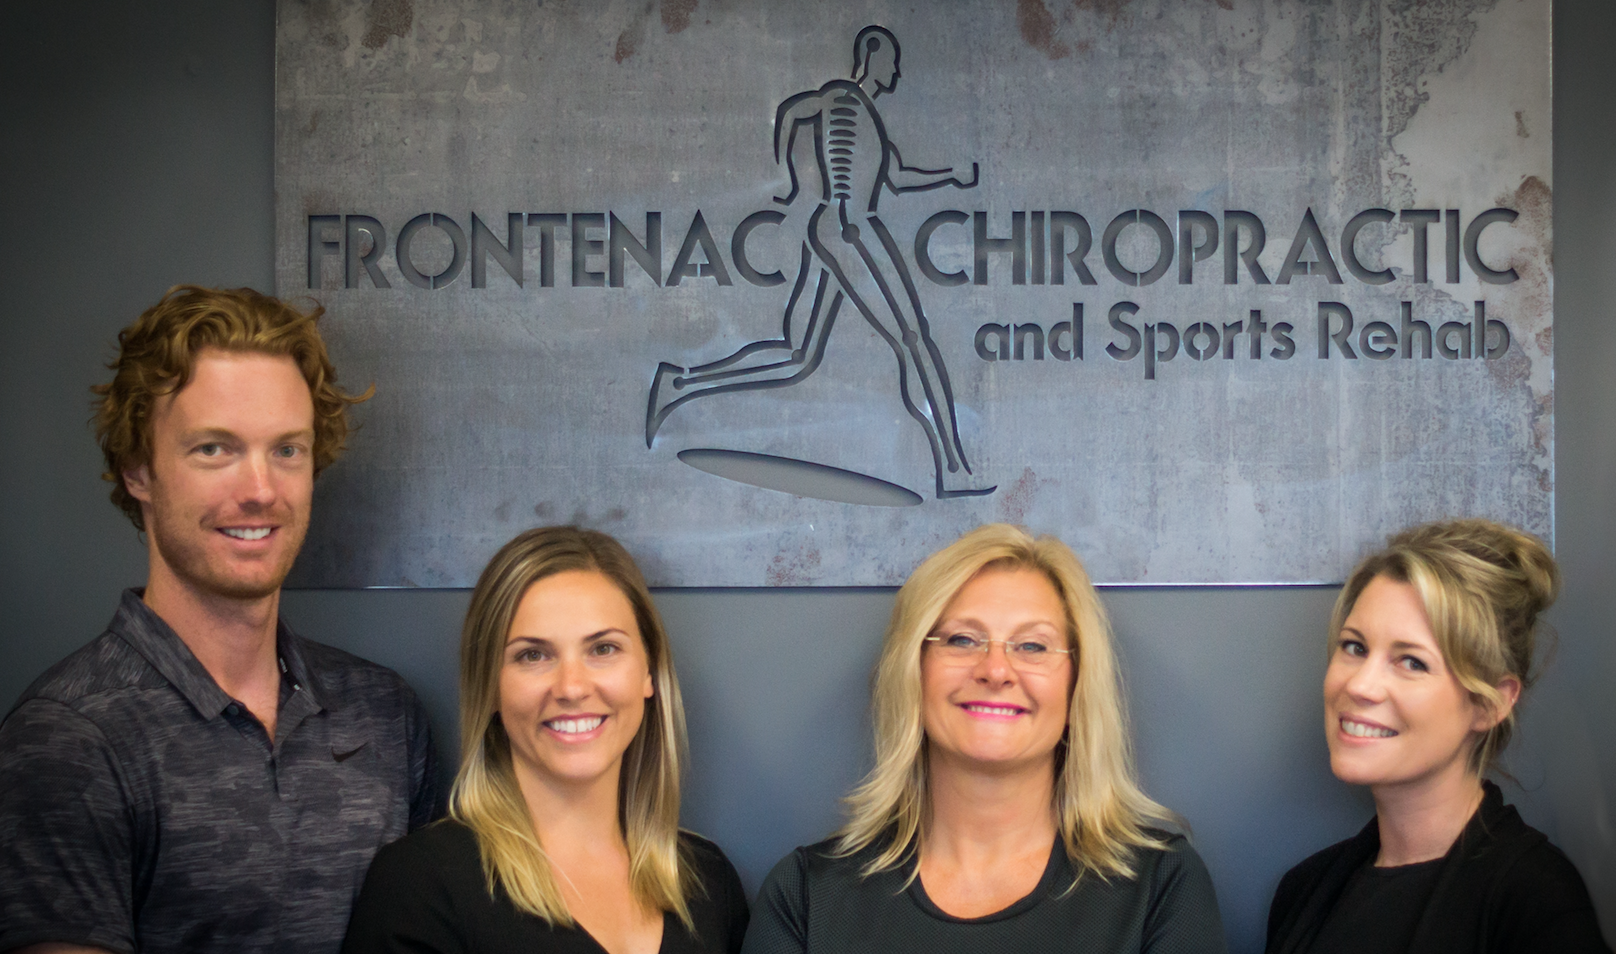 Frontenac Chiropractic Kingston Ontario Team